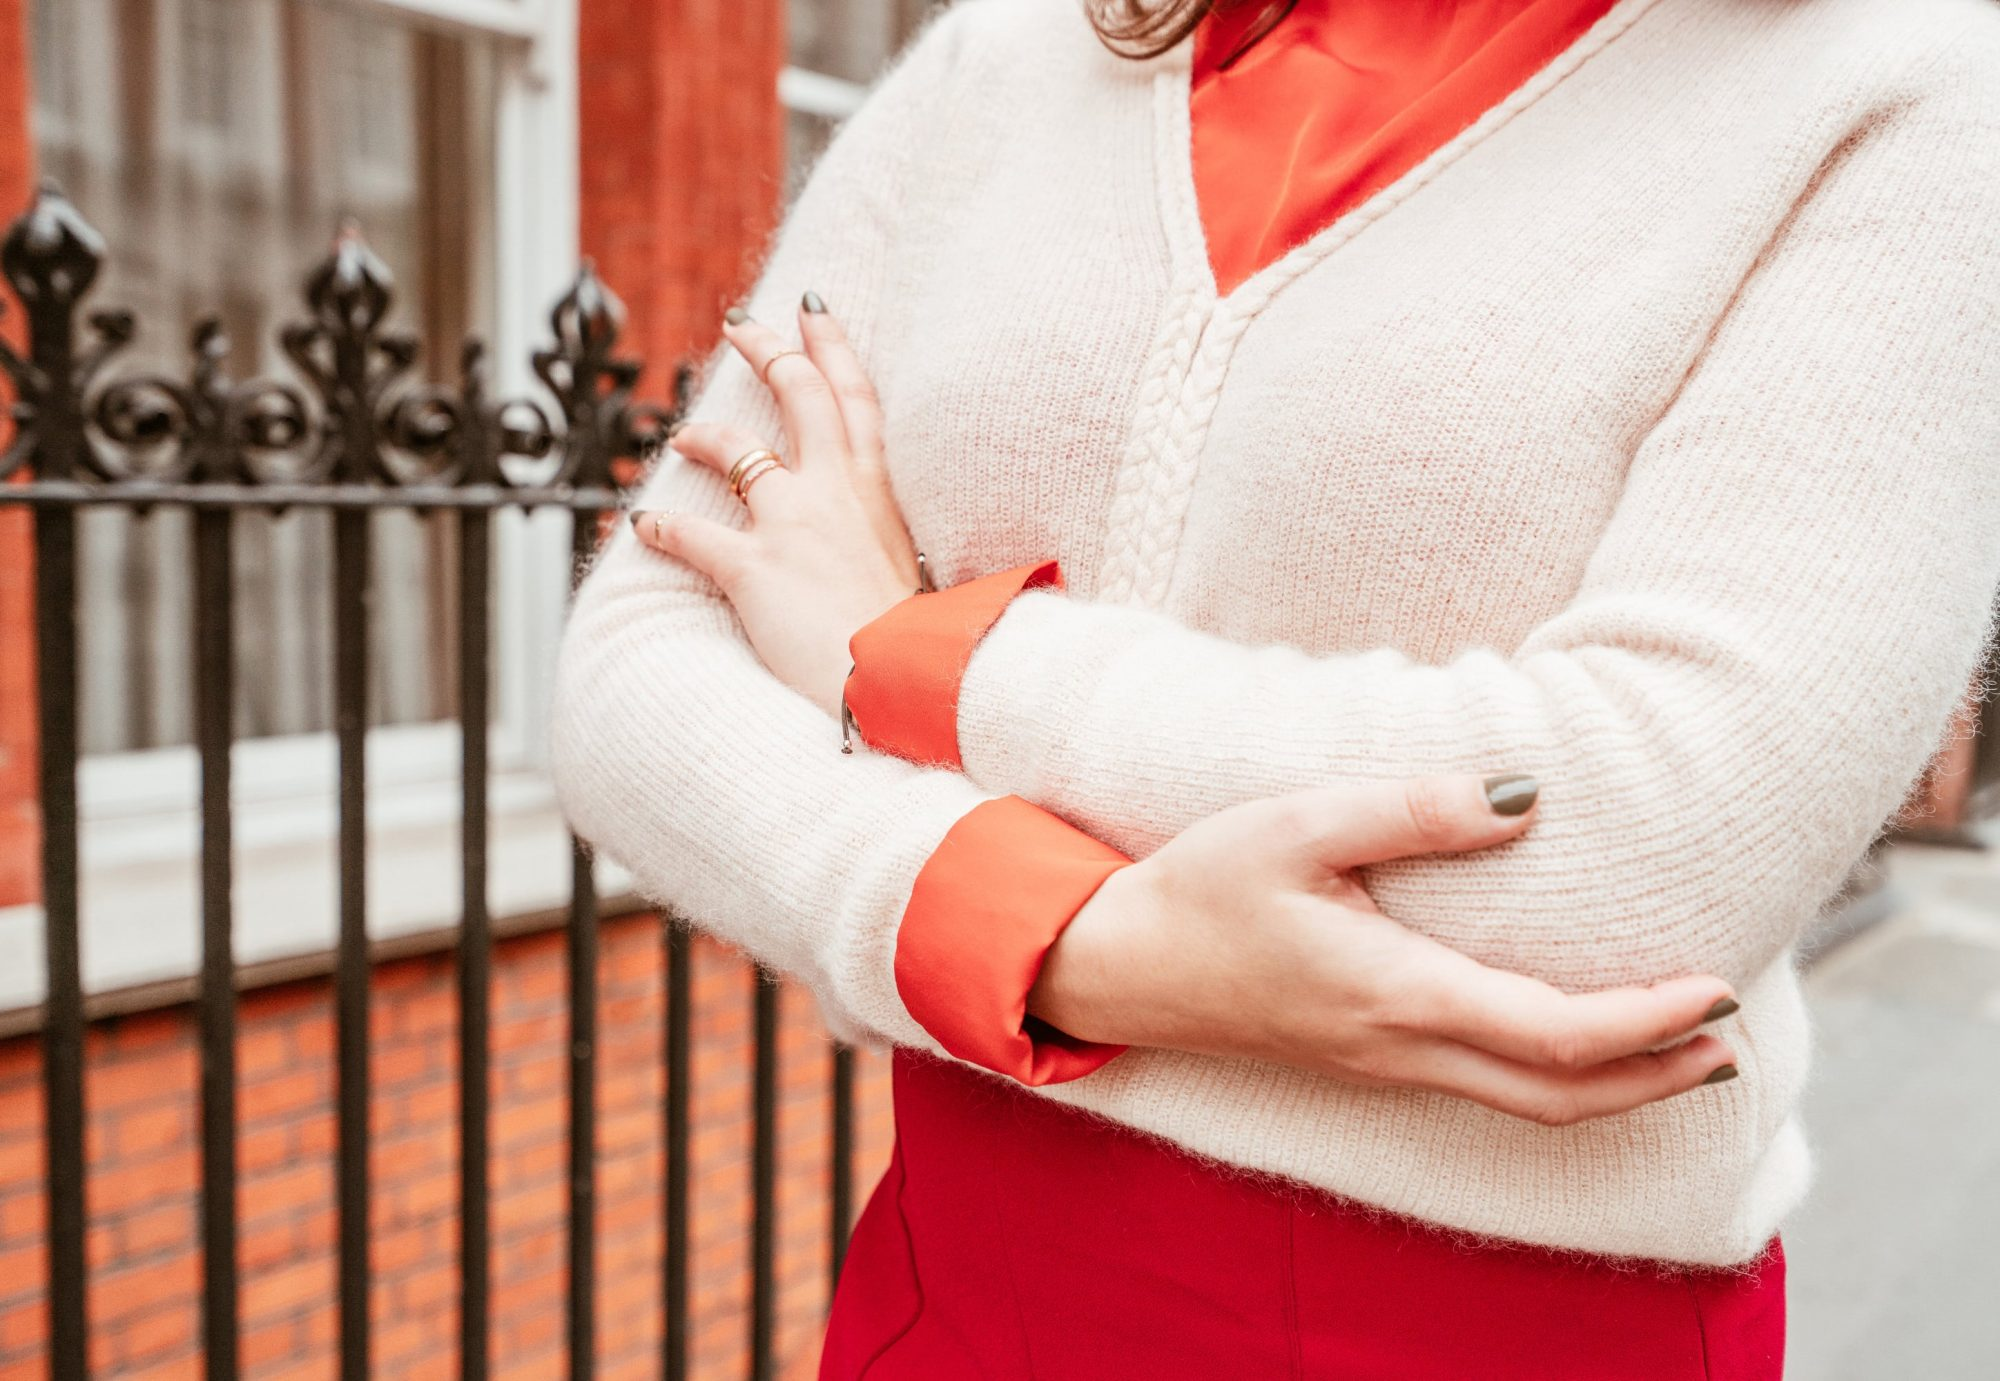 Details of Sézane Sienna Knitwear layered over a shirt